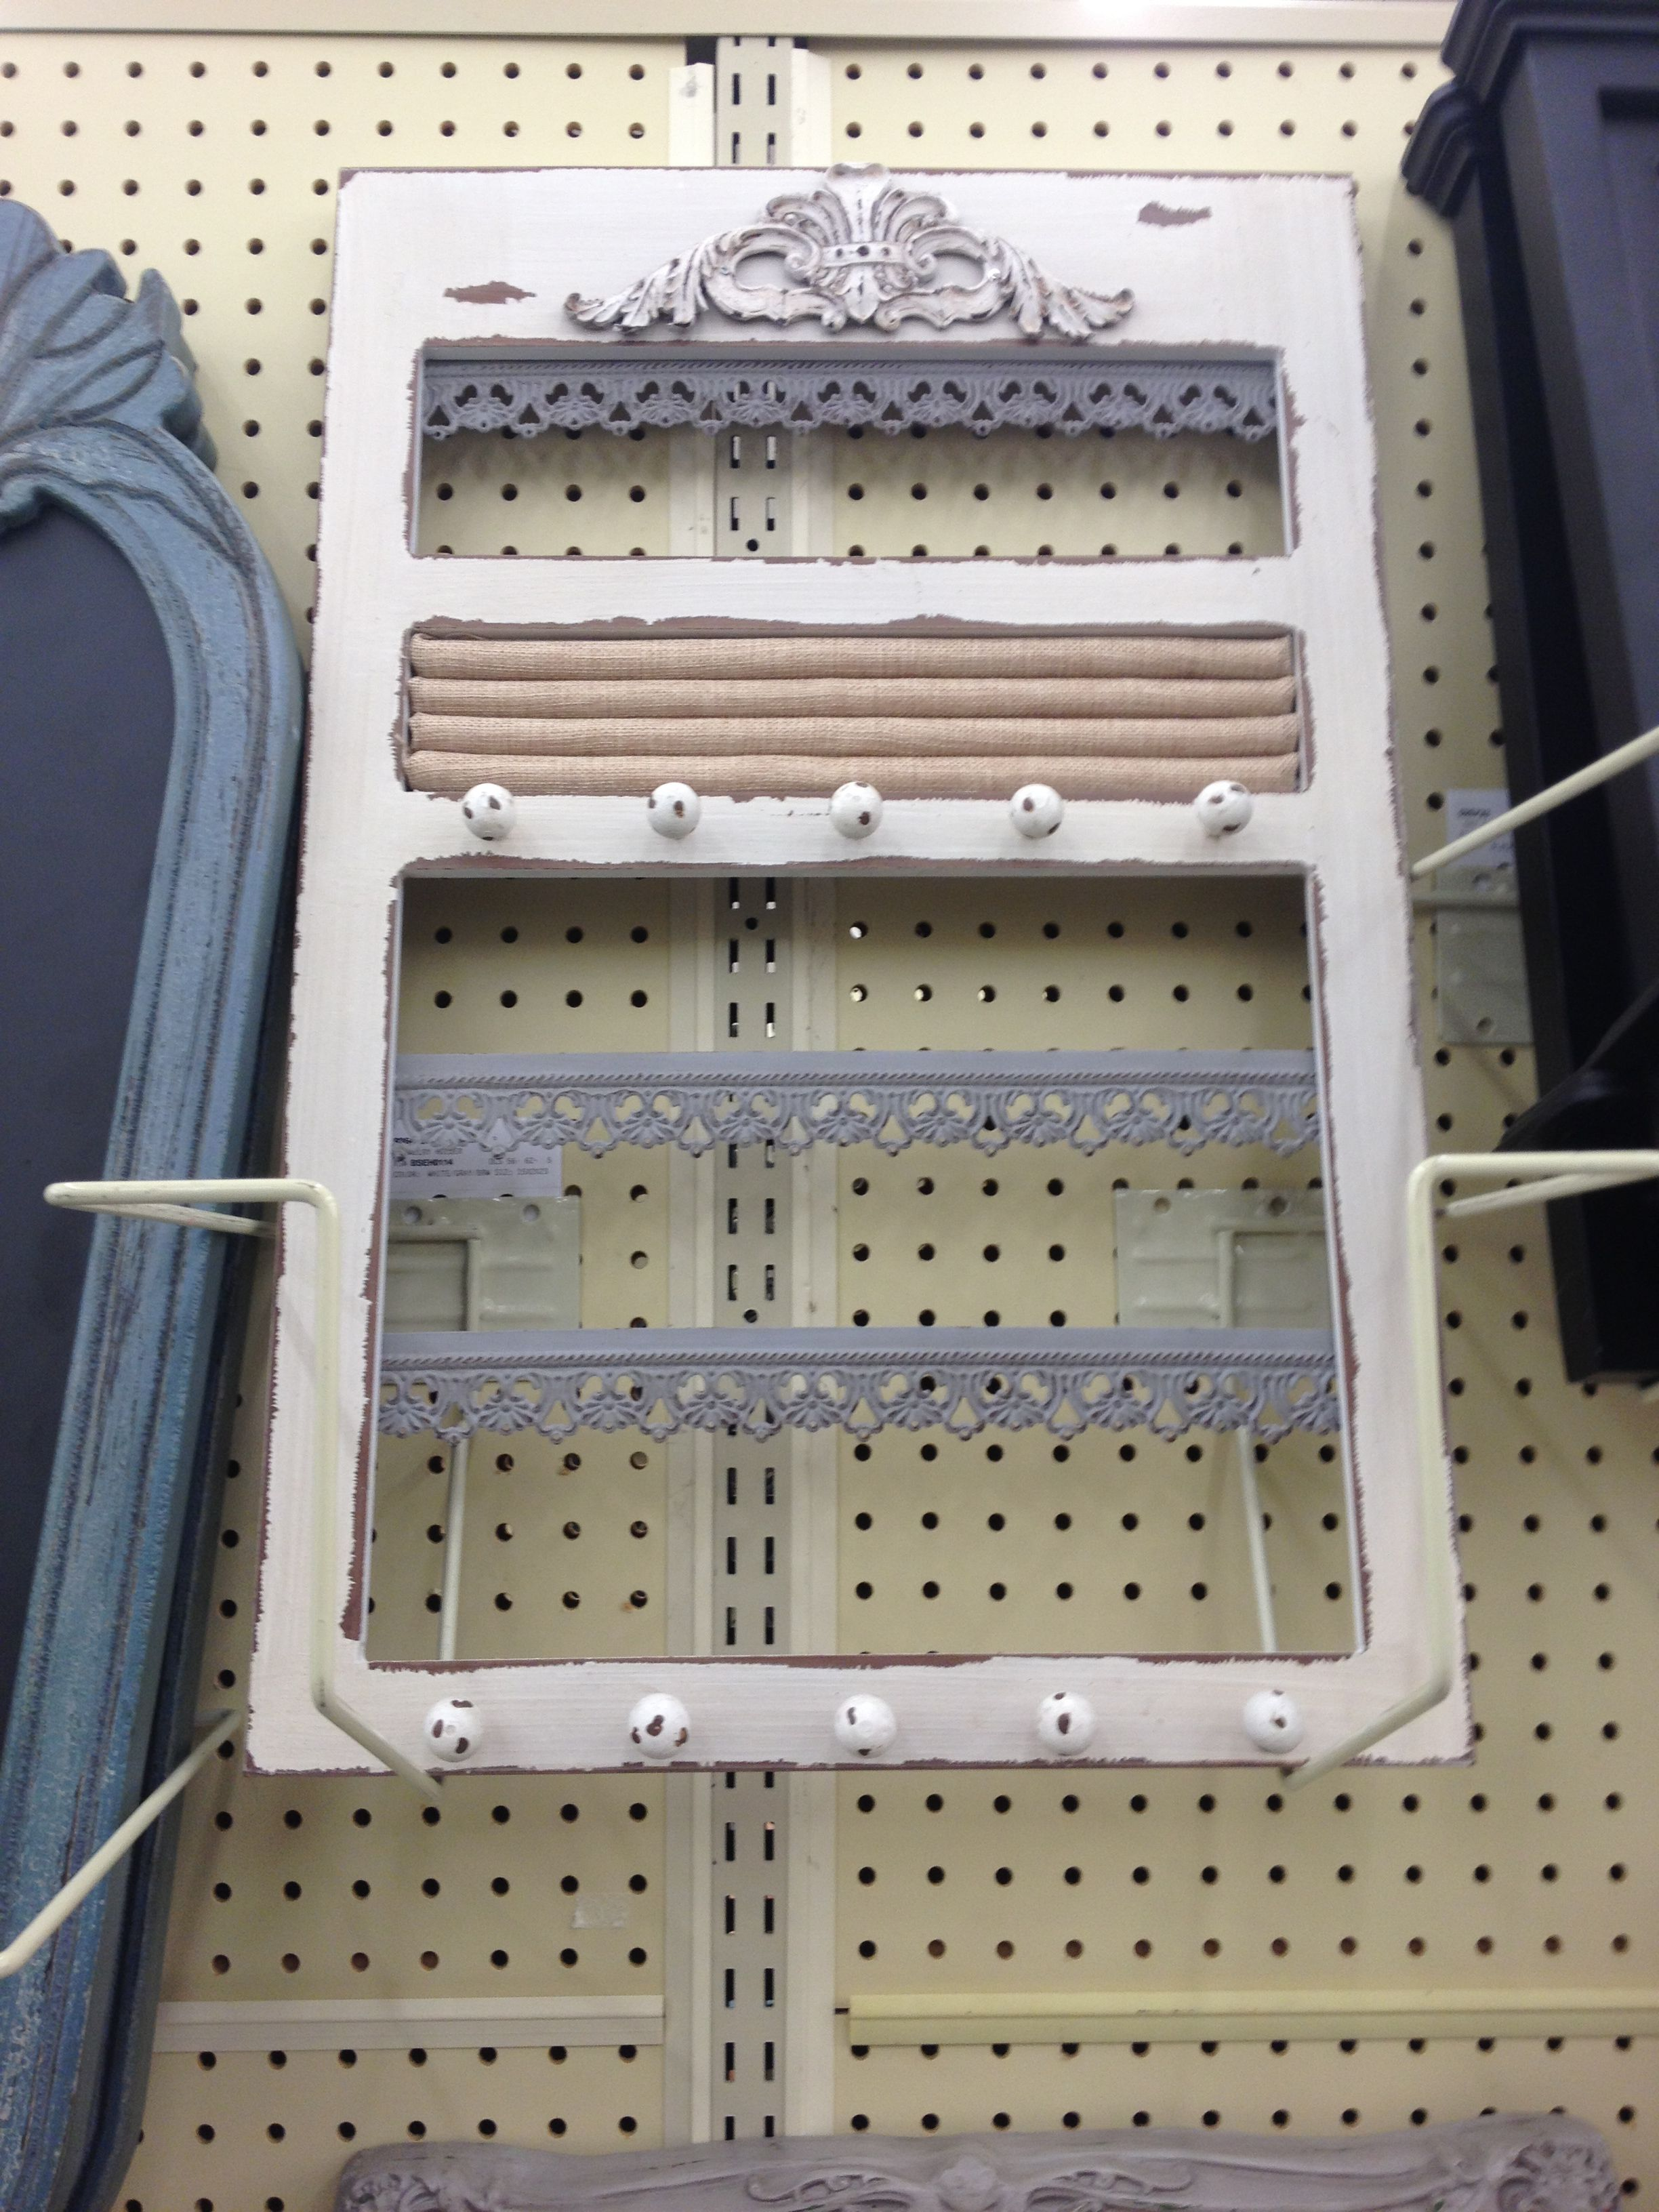 Jewlery holder 50 hobby lobby distressed look sewing for Hobby lobby jewelry holder